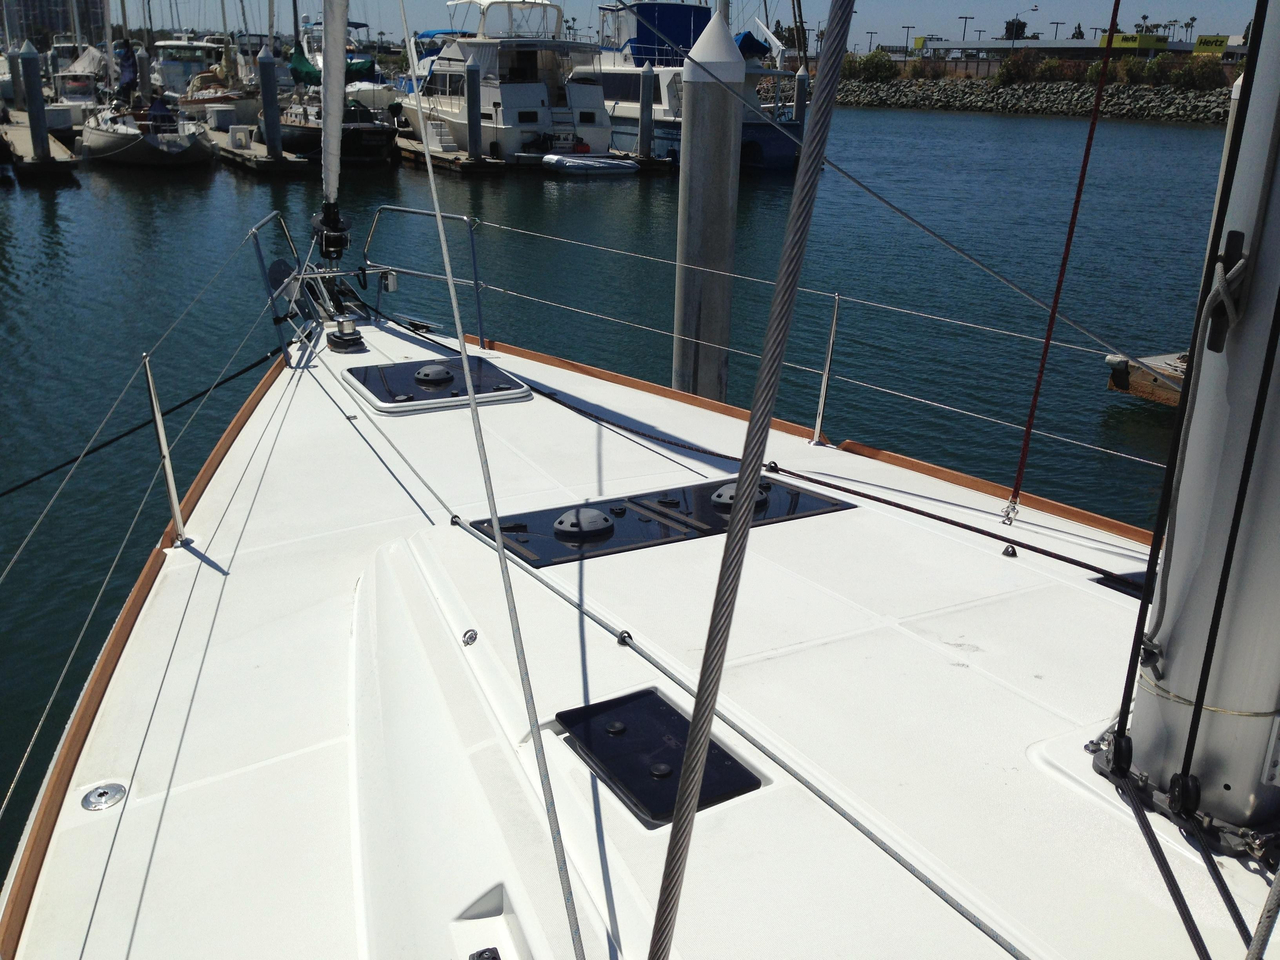 2018 used jeanneau 479 sun odyssey racer and cruiser sailboat for sale -  383 292